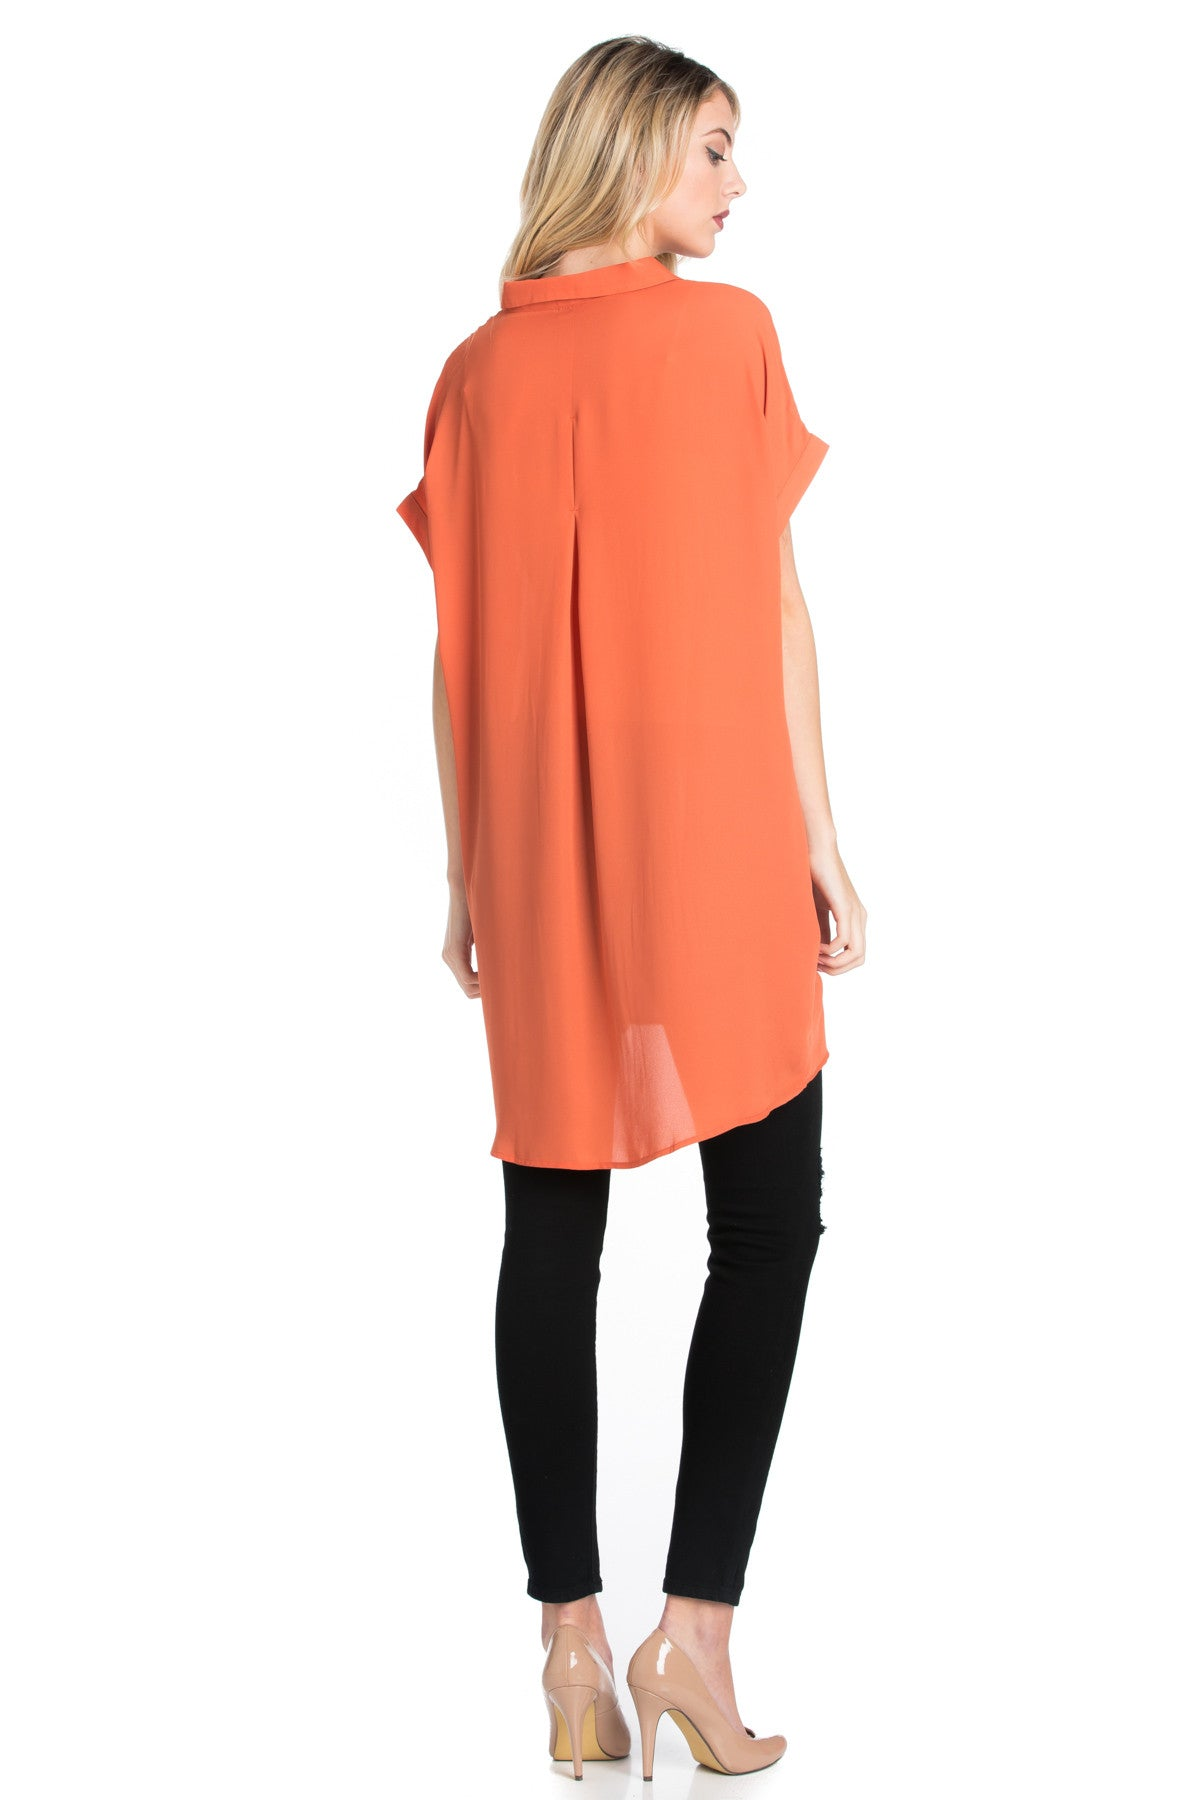 Short Sleeve Longline Button Down Chiffon Top in Sun Coral - Tops - My Yuccie - 15